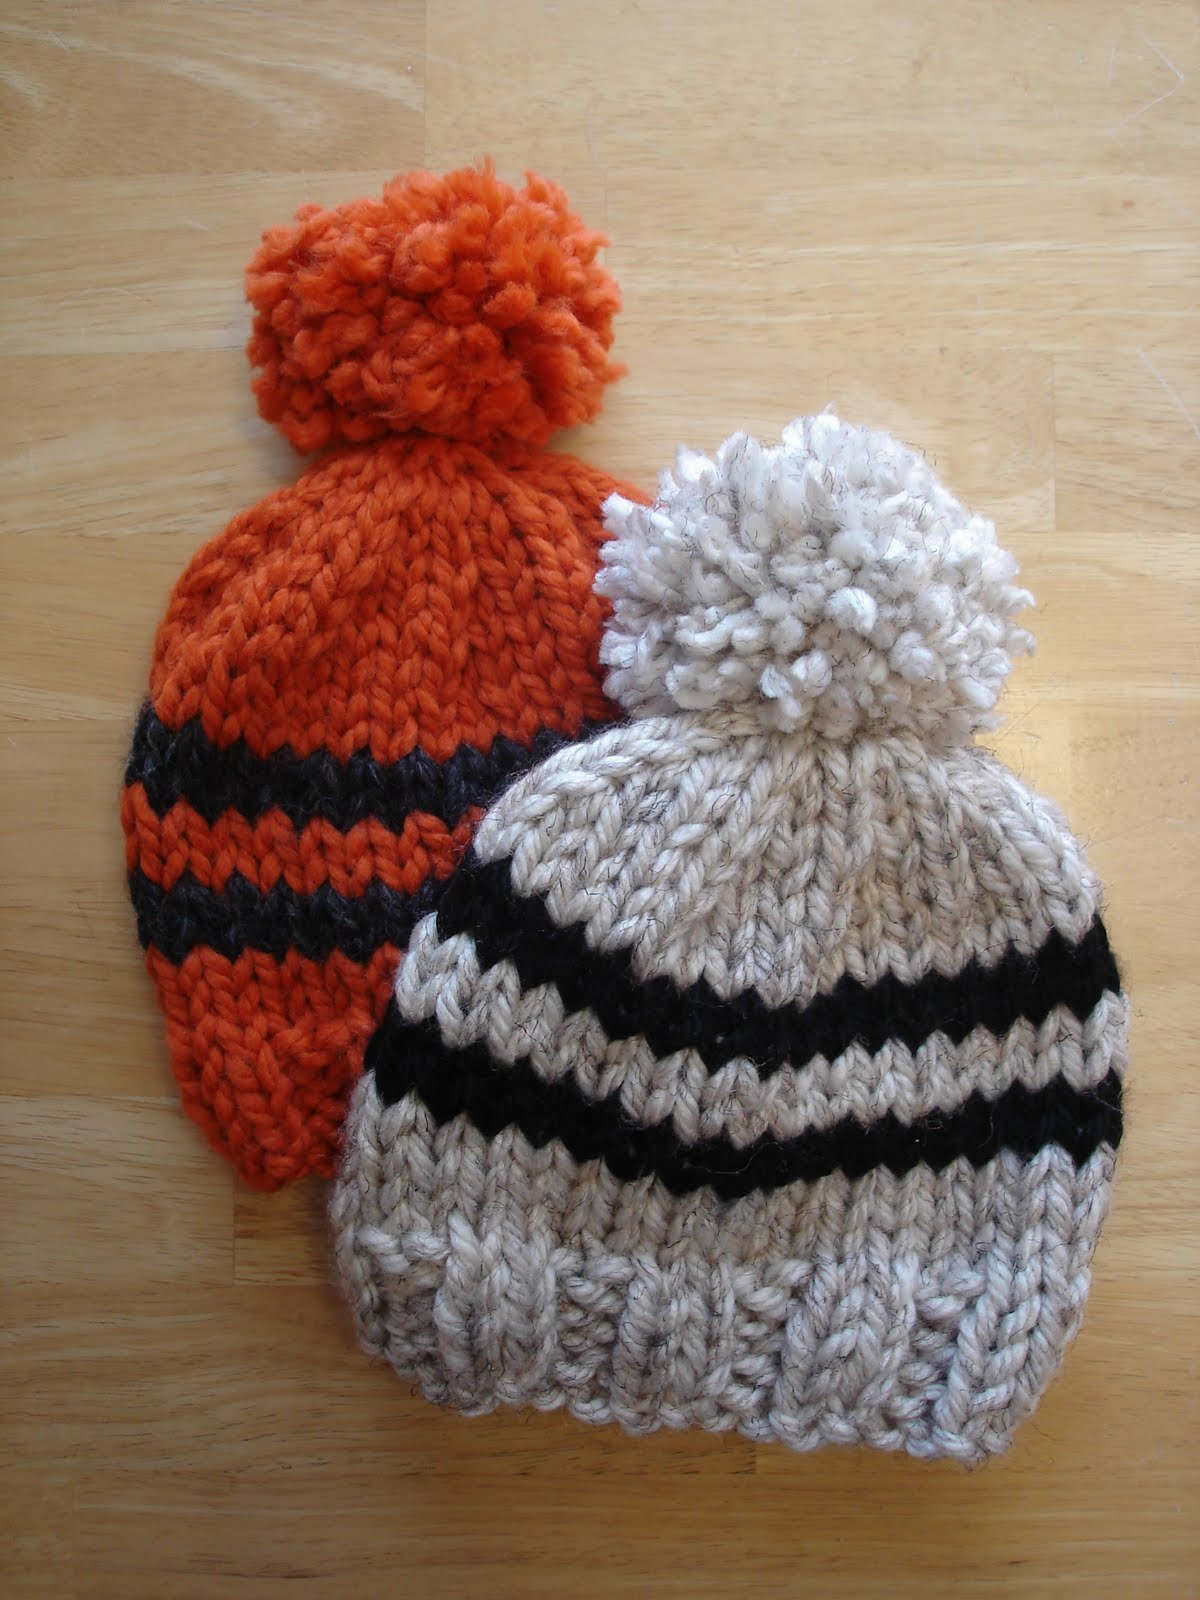 Free Knitting Patterns For Toddlers Beanies : Fiber Flux: Free Knitting Pattern! Toddler Rugby Hat...